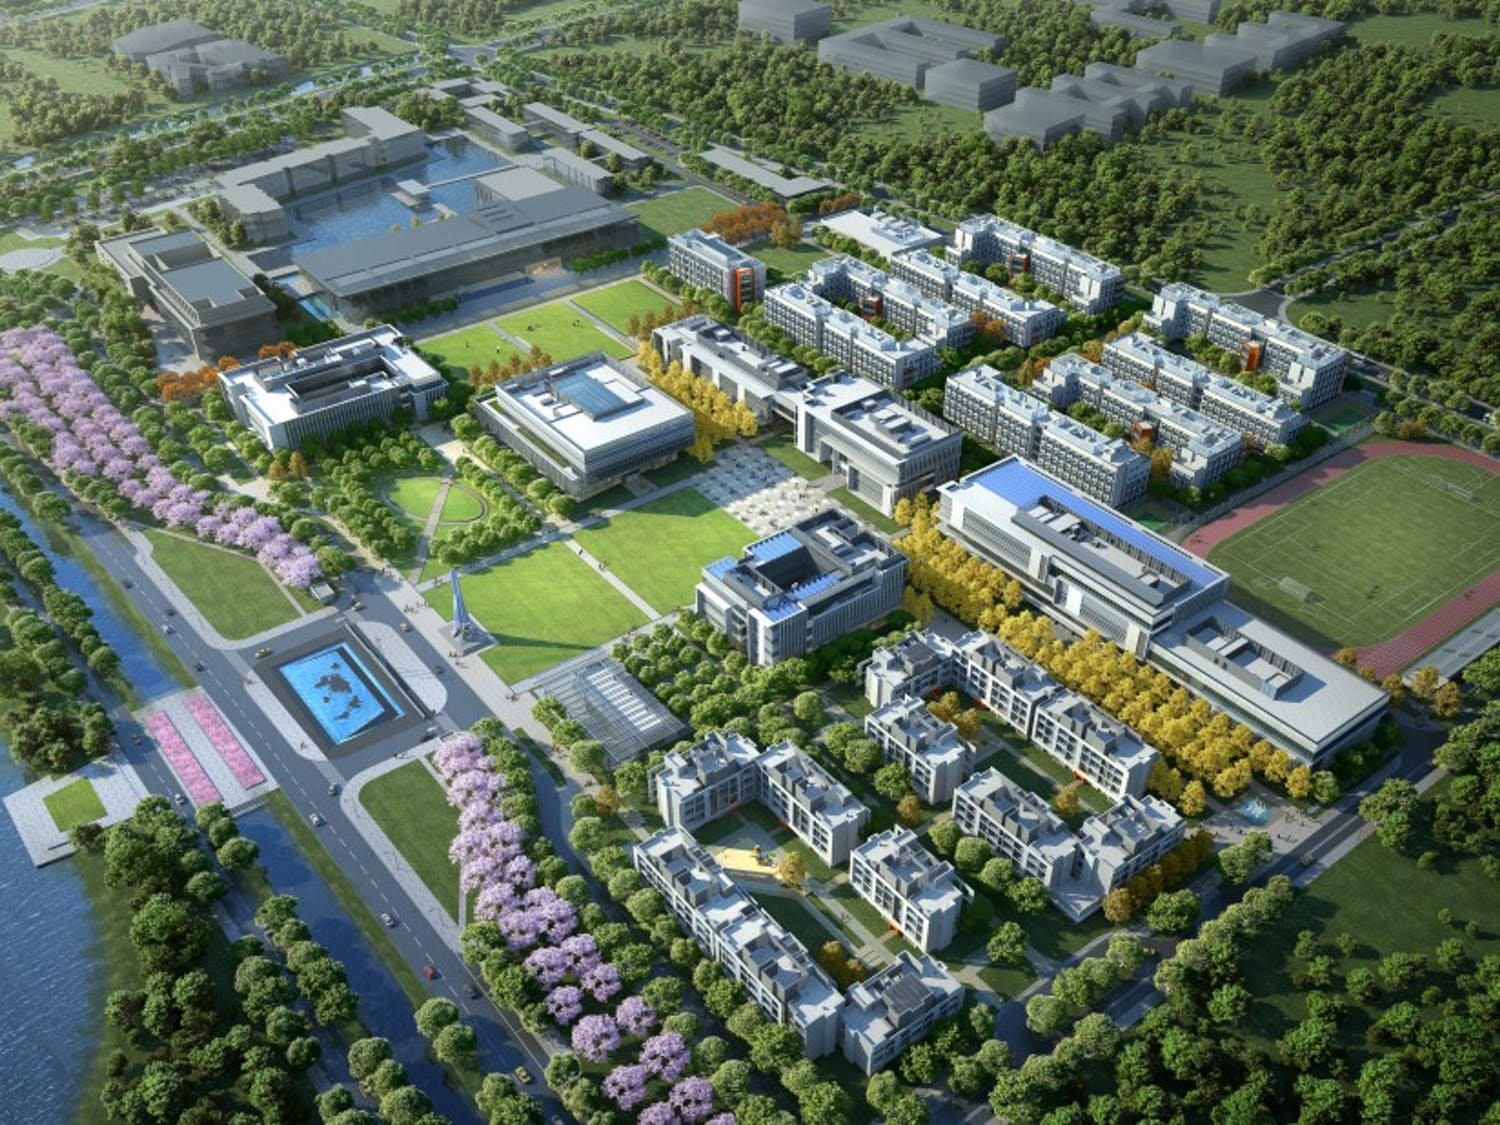 A birds-eye rendering of the future of DKU, which will greatly increase the size of Duke Kunshan University to include new classrooms, laboratories and more.